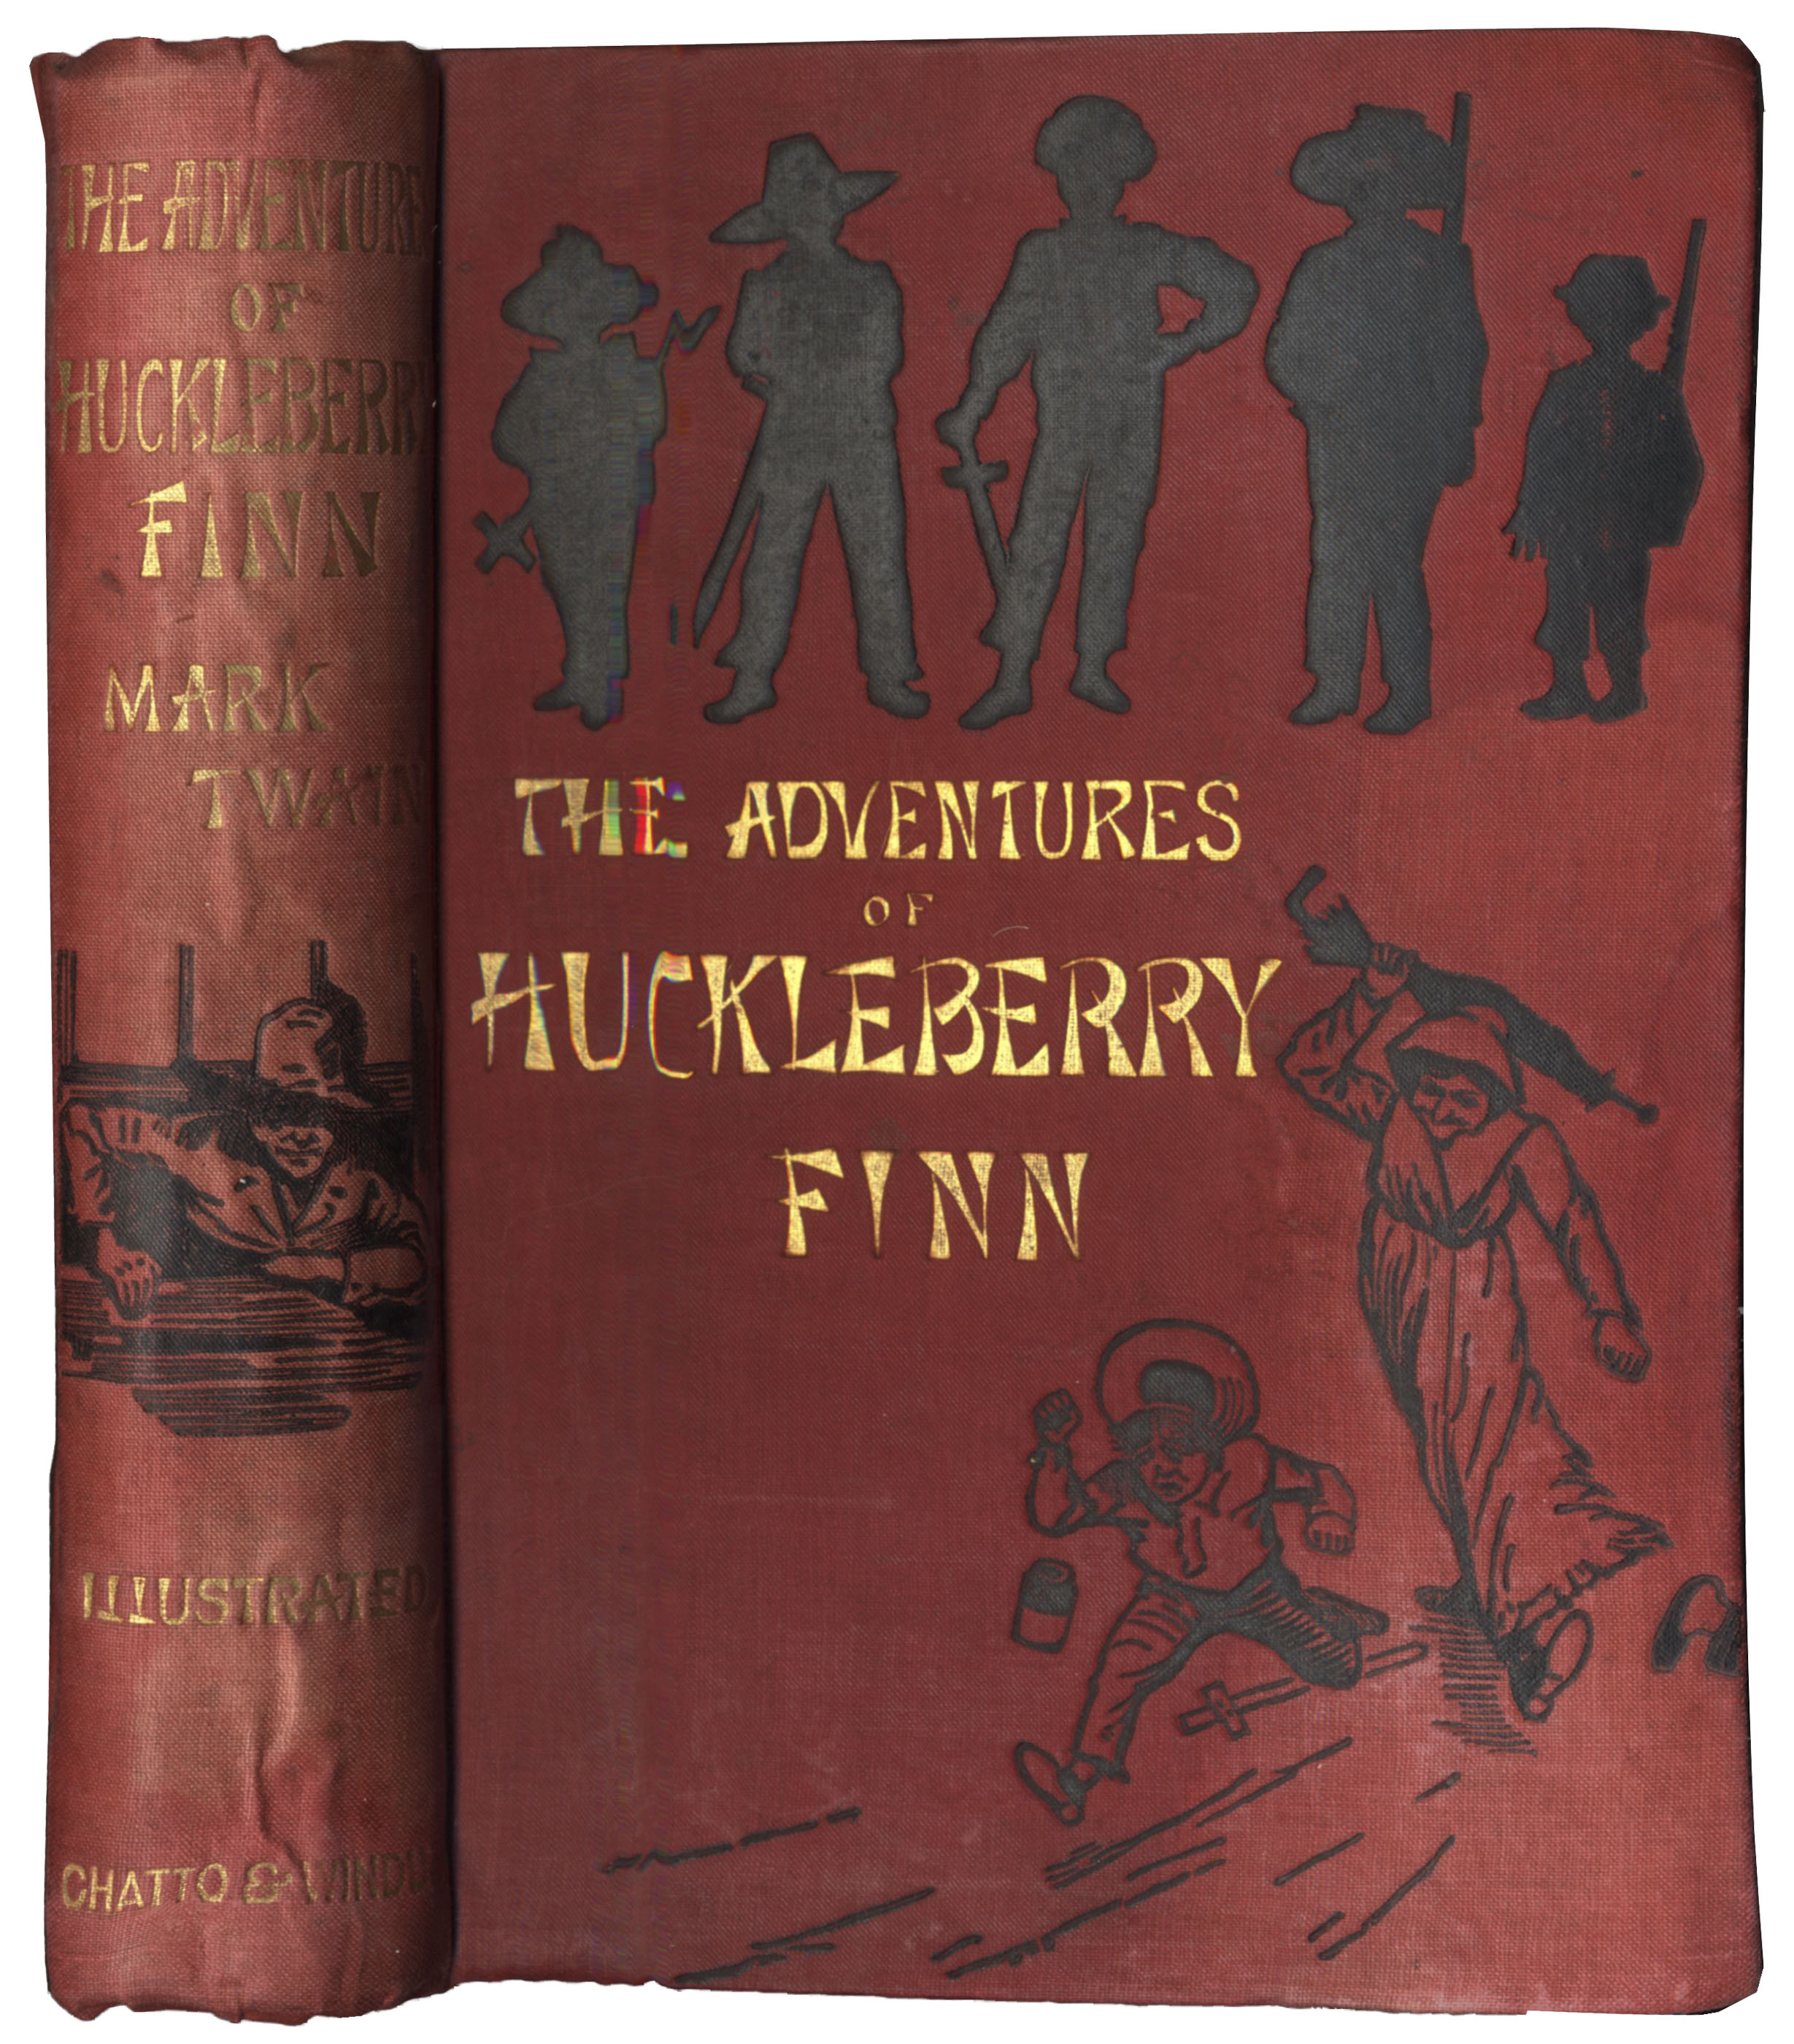 a journal of the adventures of huckleberry finn by mark twain The adventures of huckleberry finn journal entry : march 25, 2015 mark twain called huckleberry finn a book of mine where a sound heart and a deformed conscience come into collision and conscience suffers defeat.